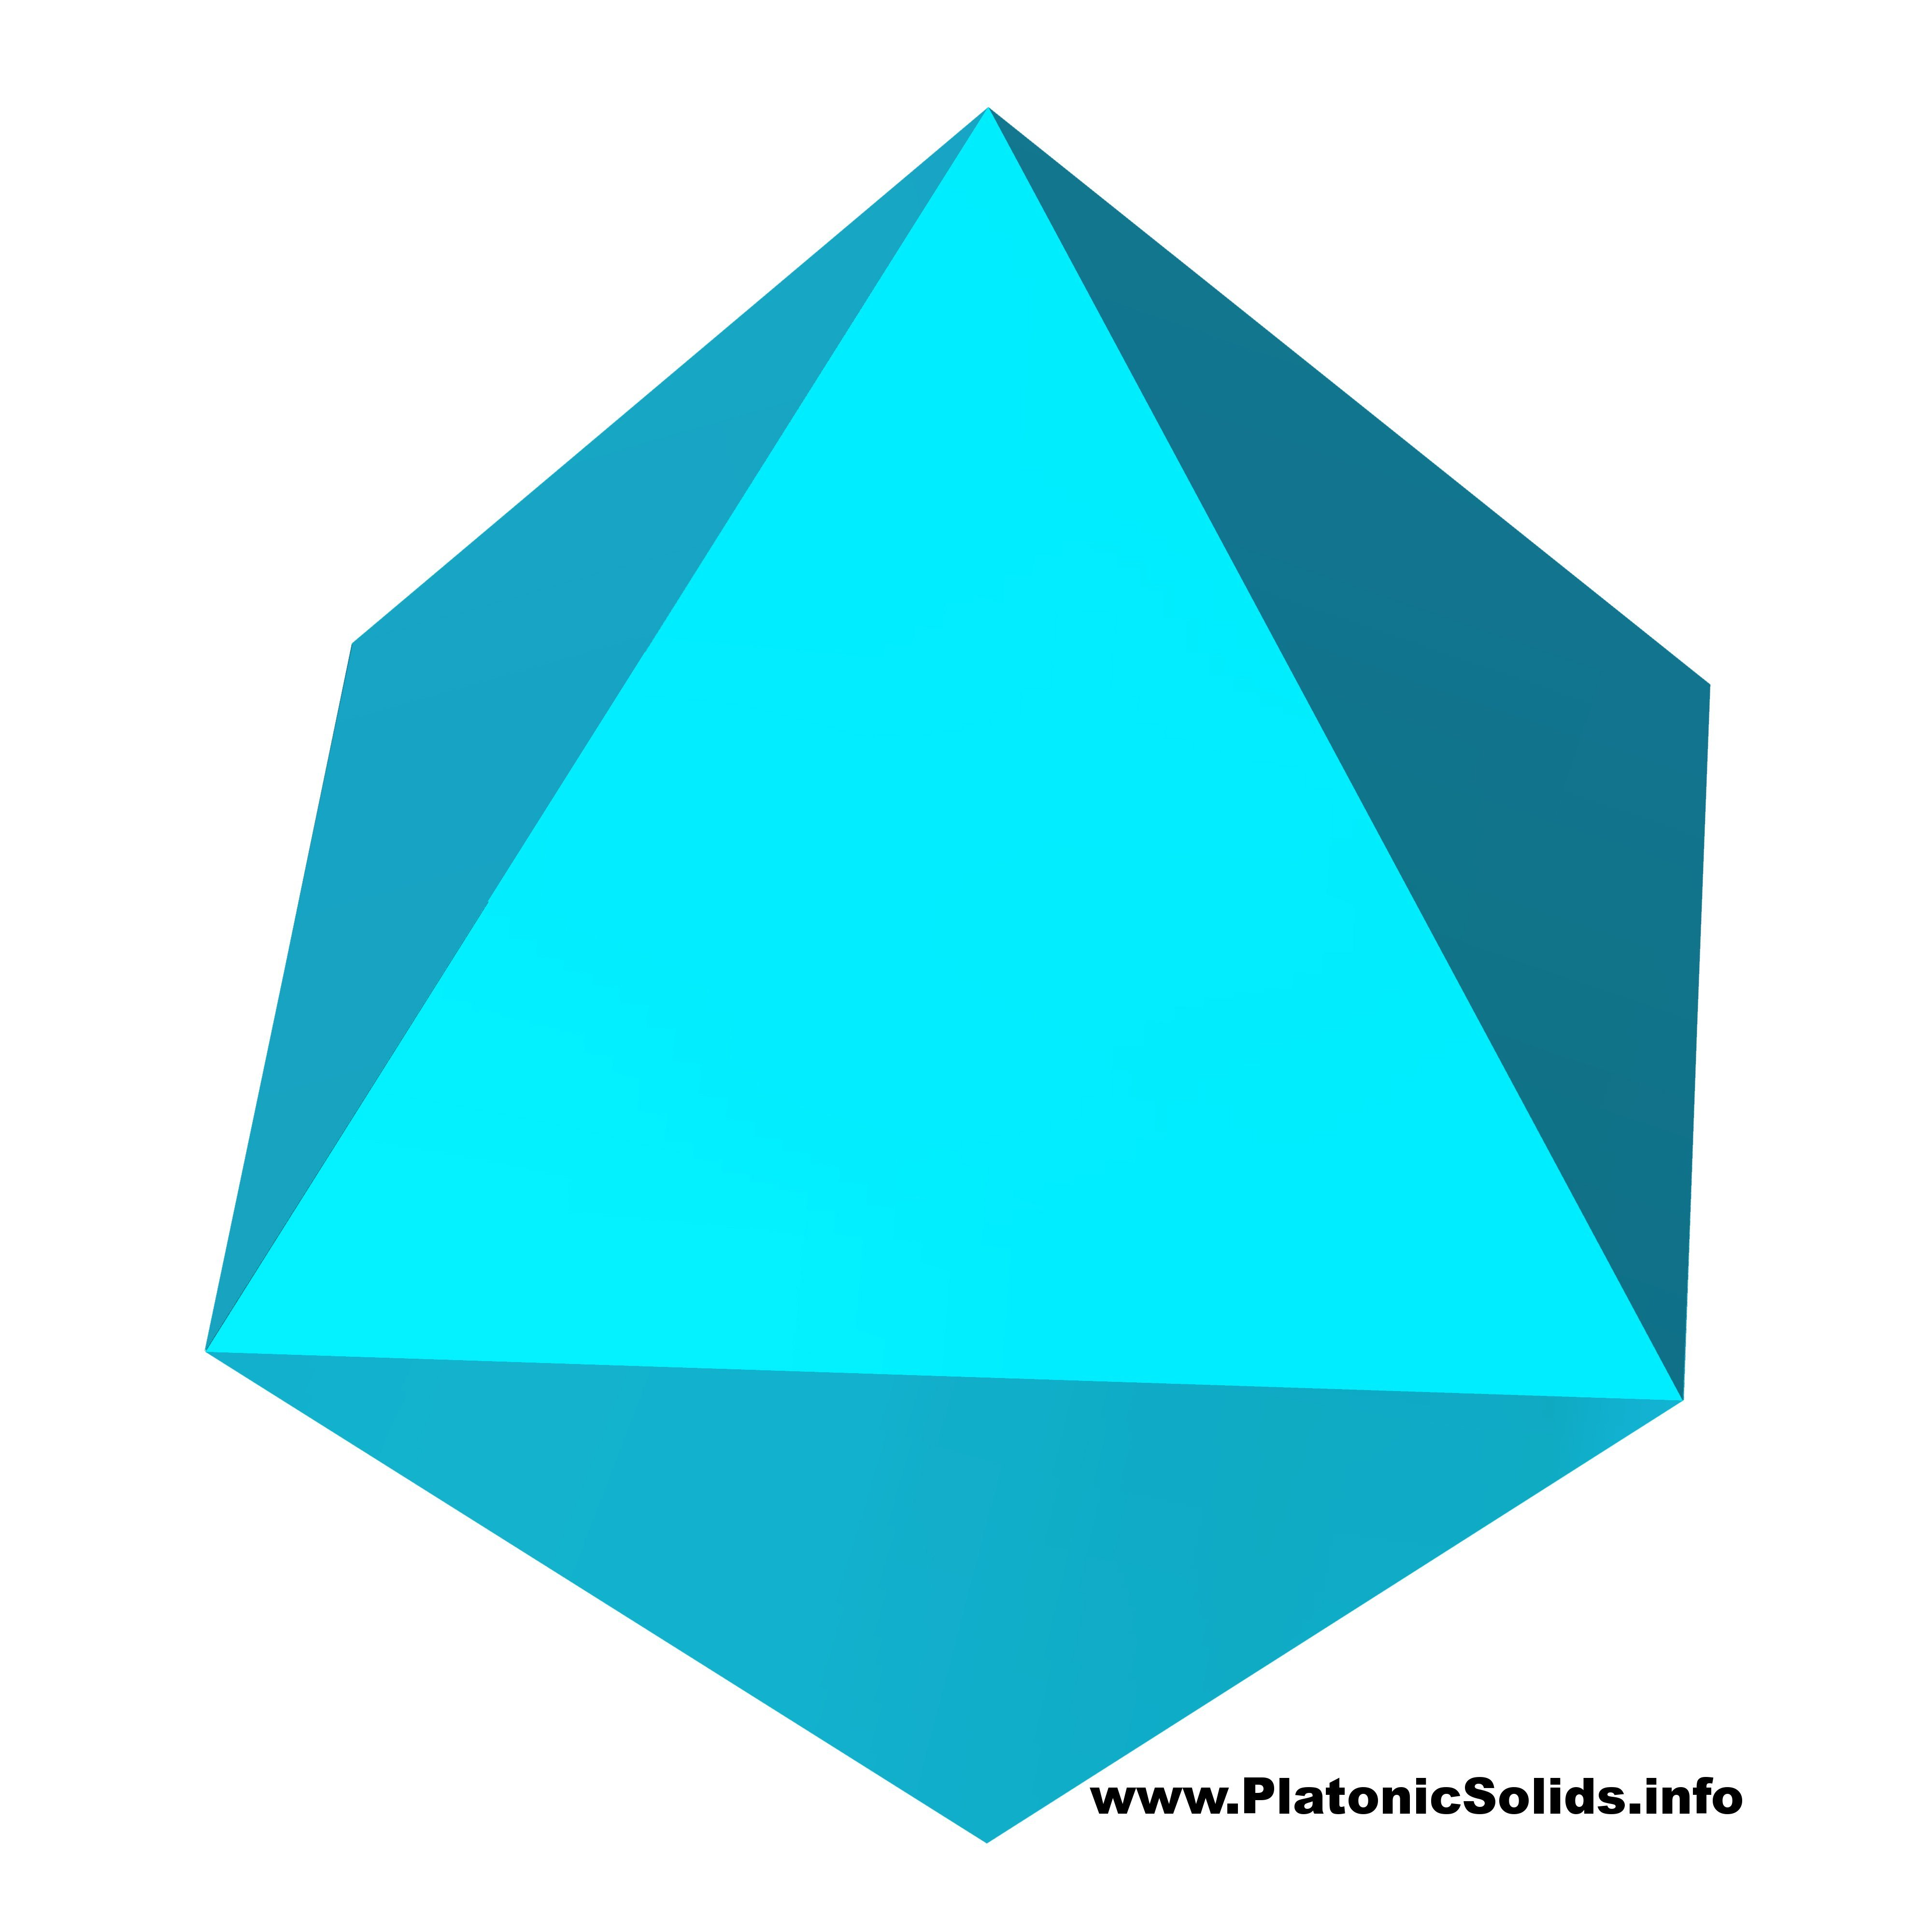 Hi Res Images On The Platonic Solids Information Site